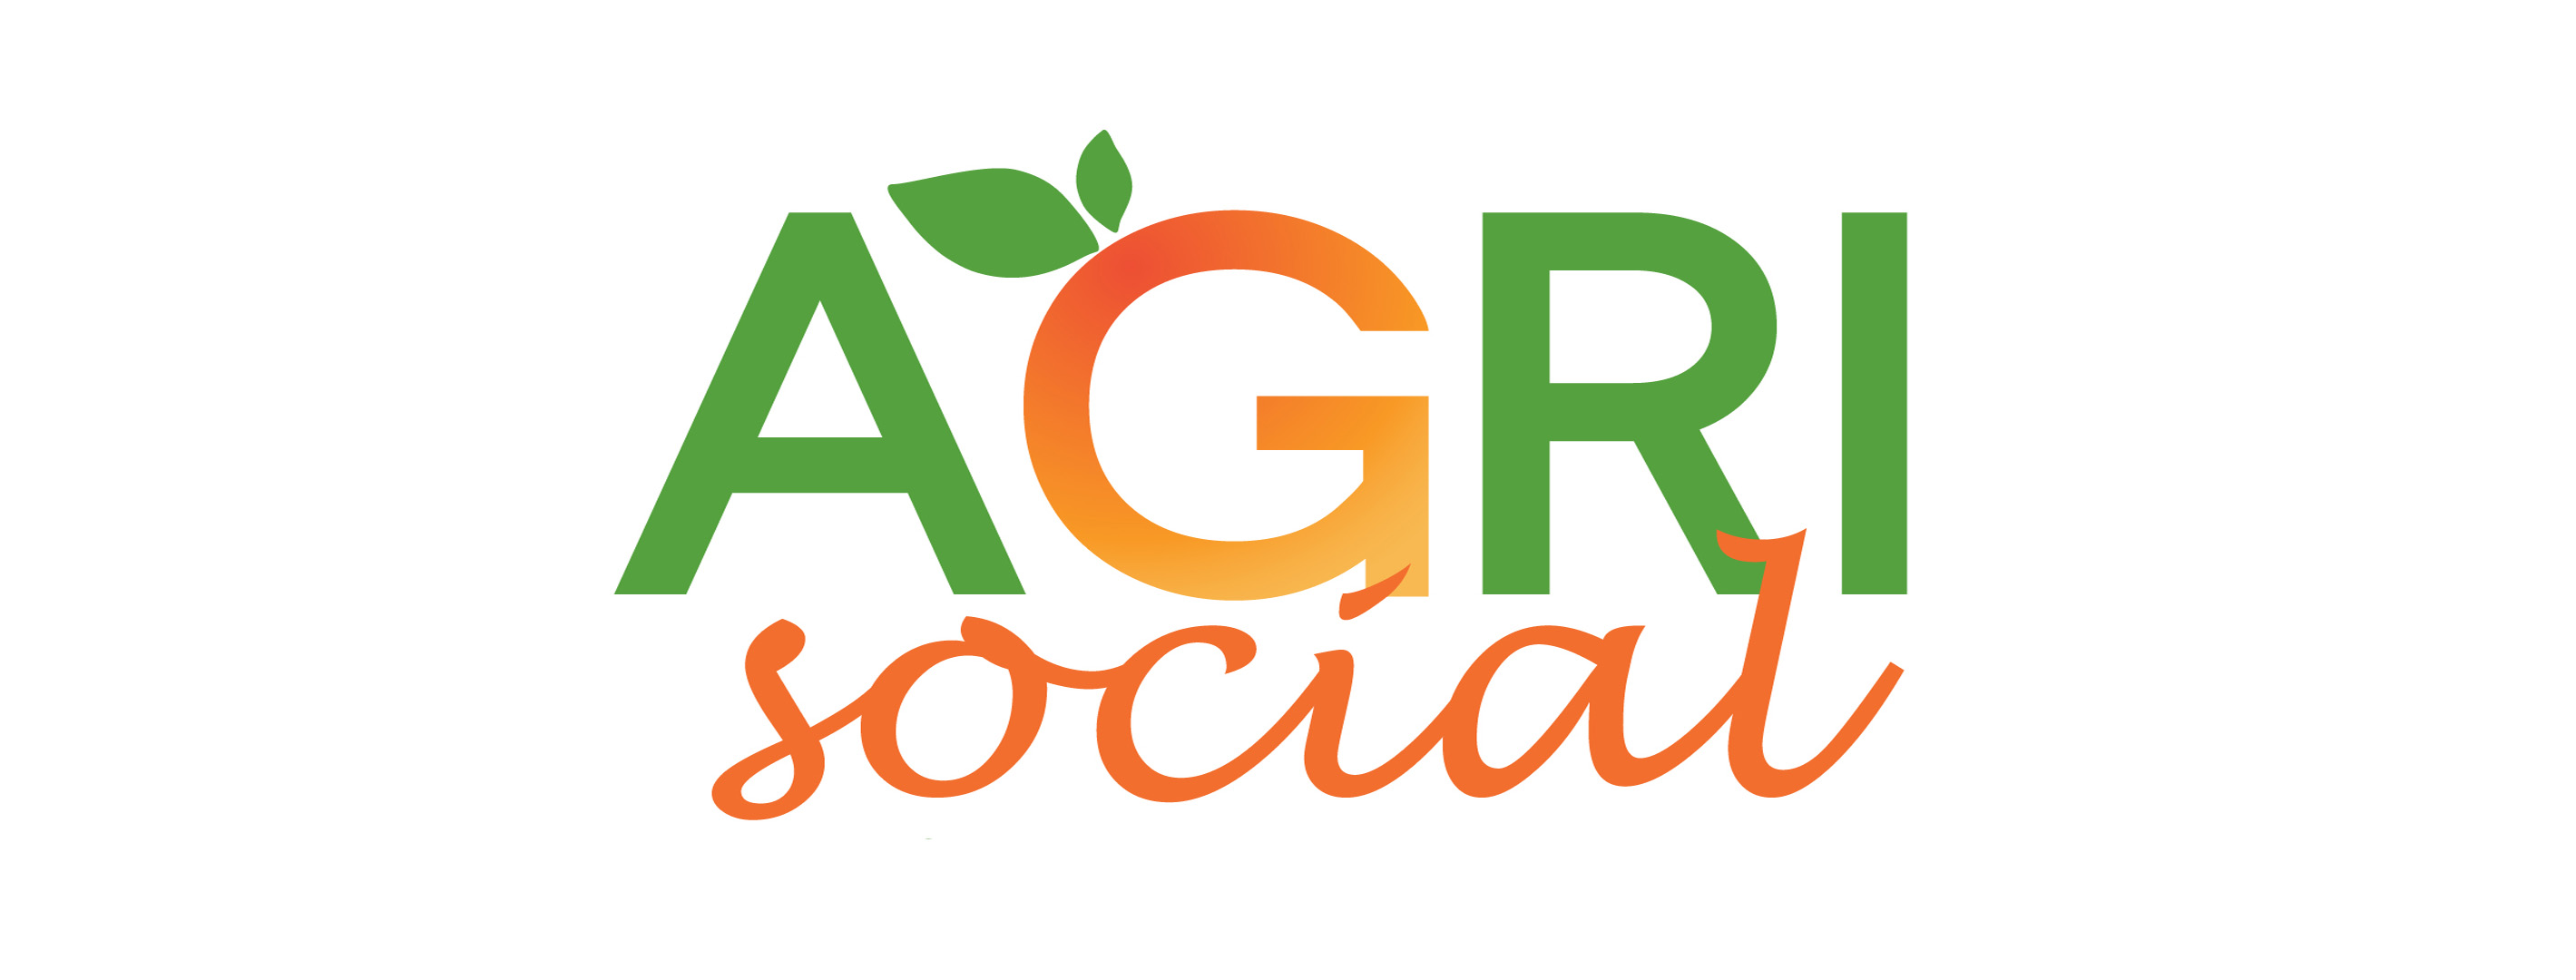 Agricoltura Sociale Agrisocial AgriCo.Re.